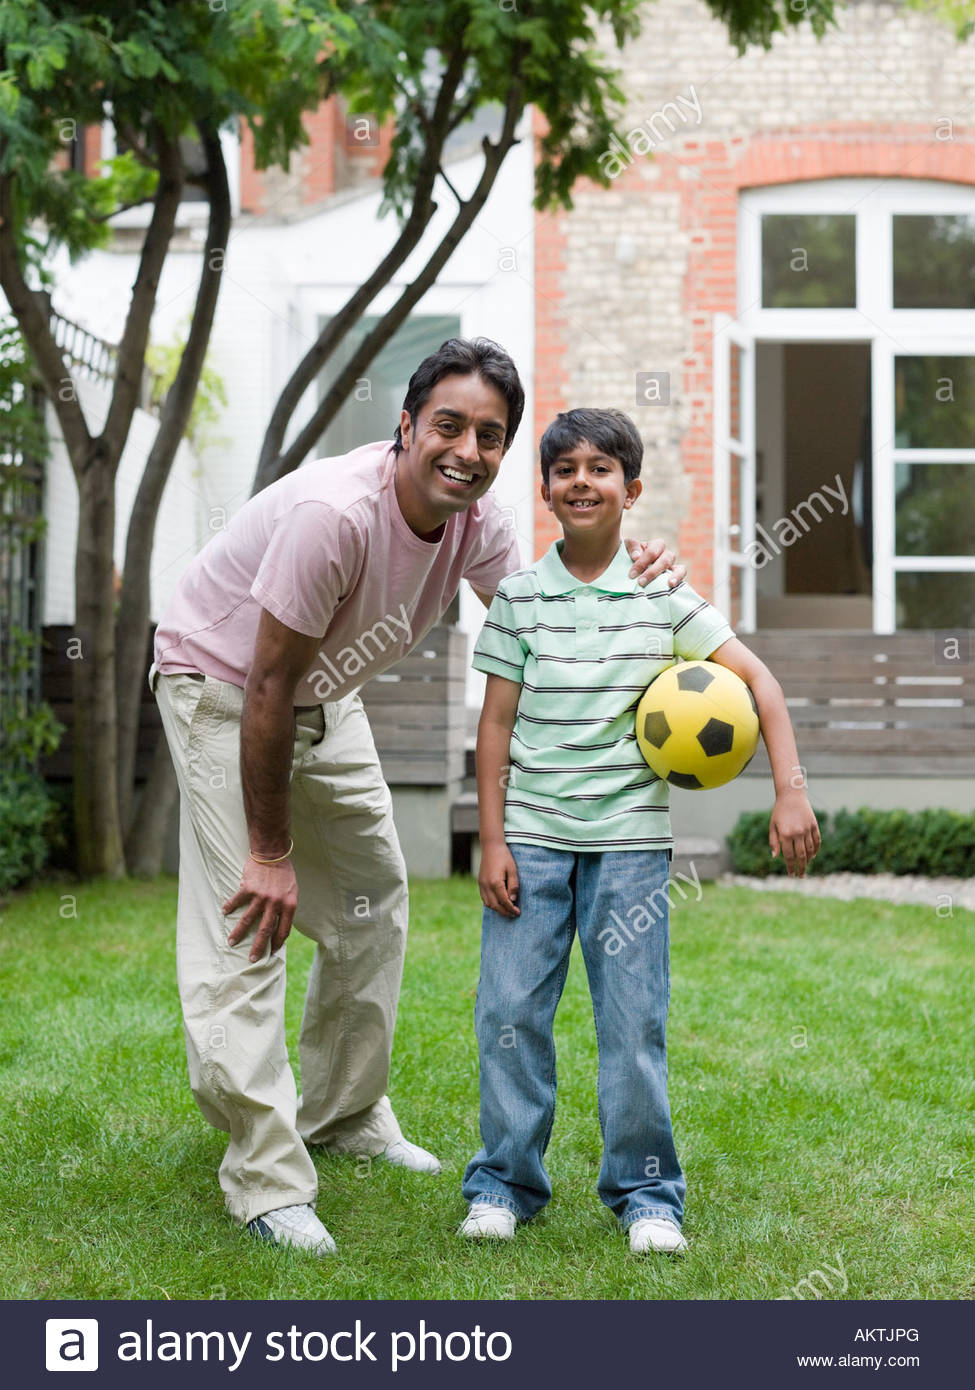 Father and son with football - Stock Image